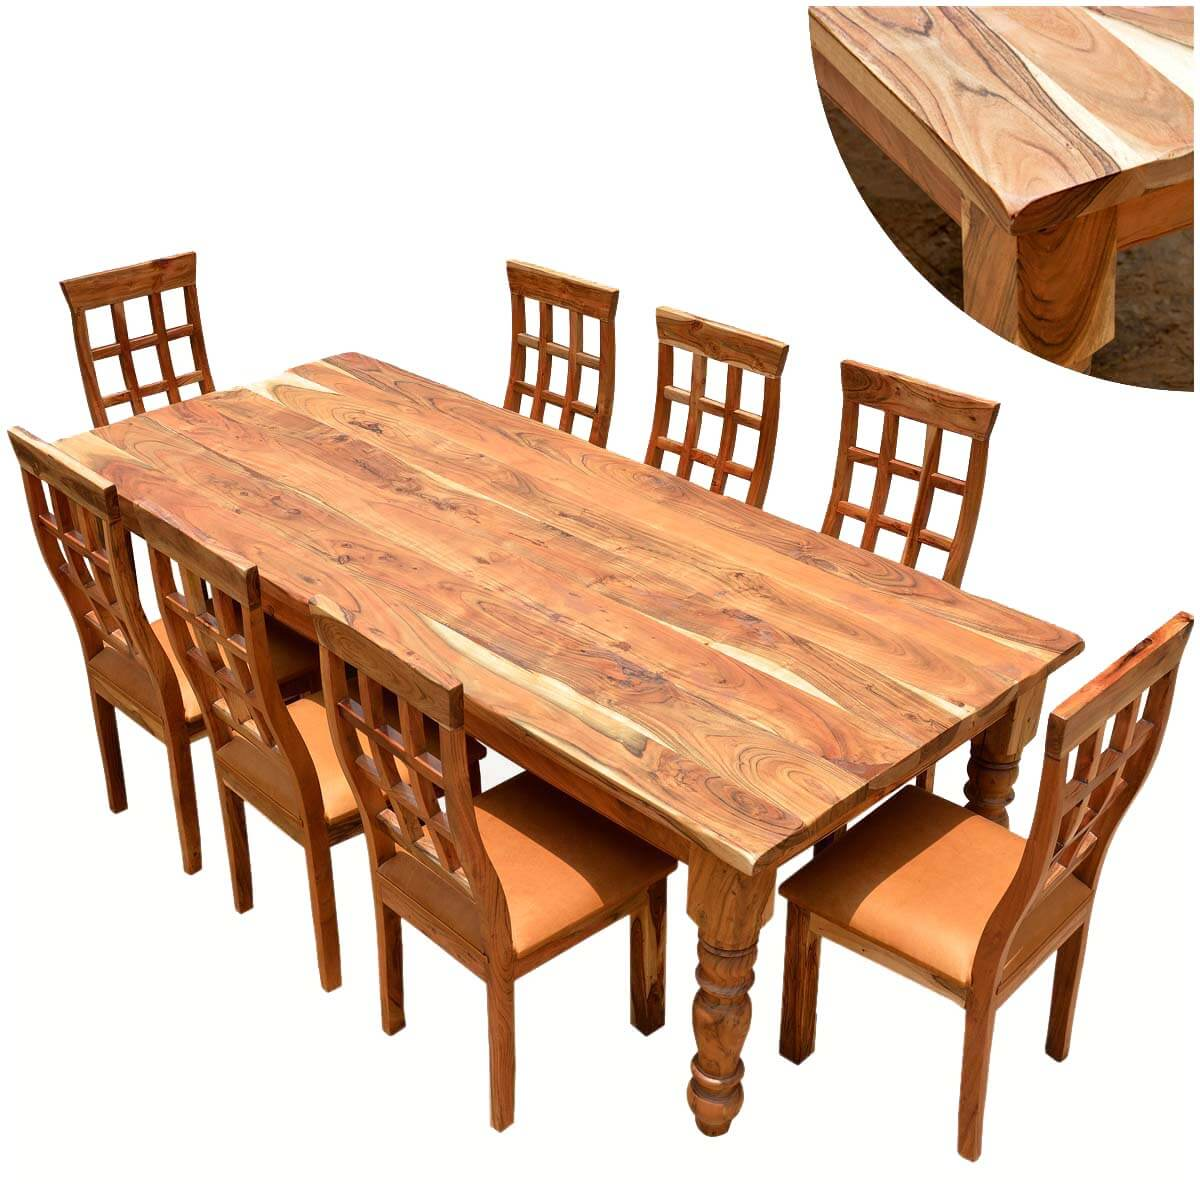 Rustic furniture farmhouse solid wood dining table chair set for Farmhouse dining room table set